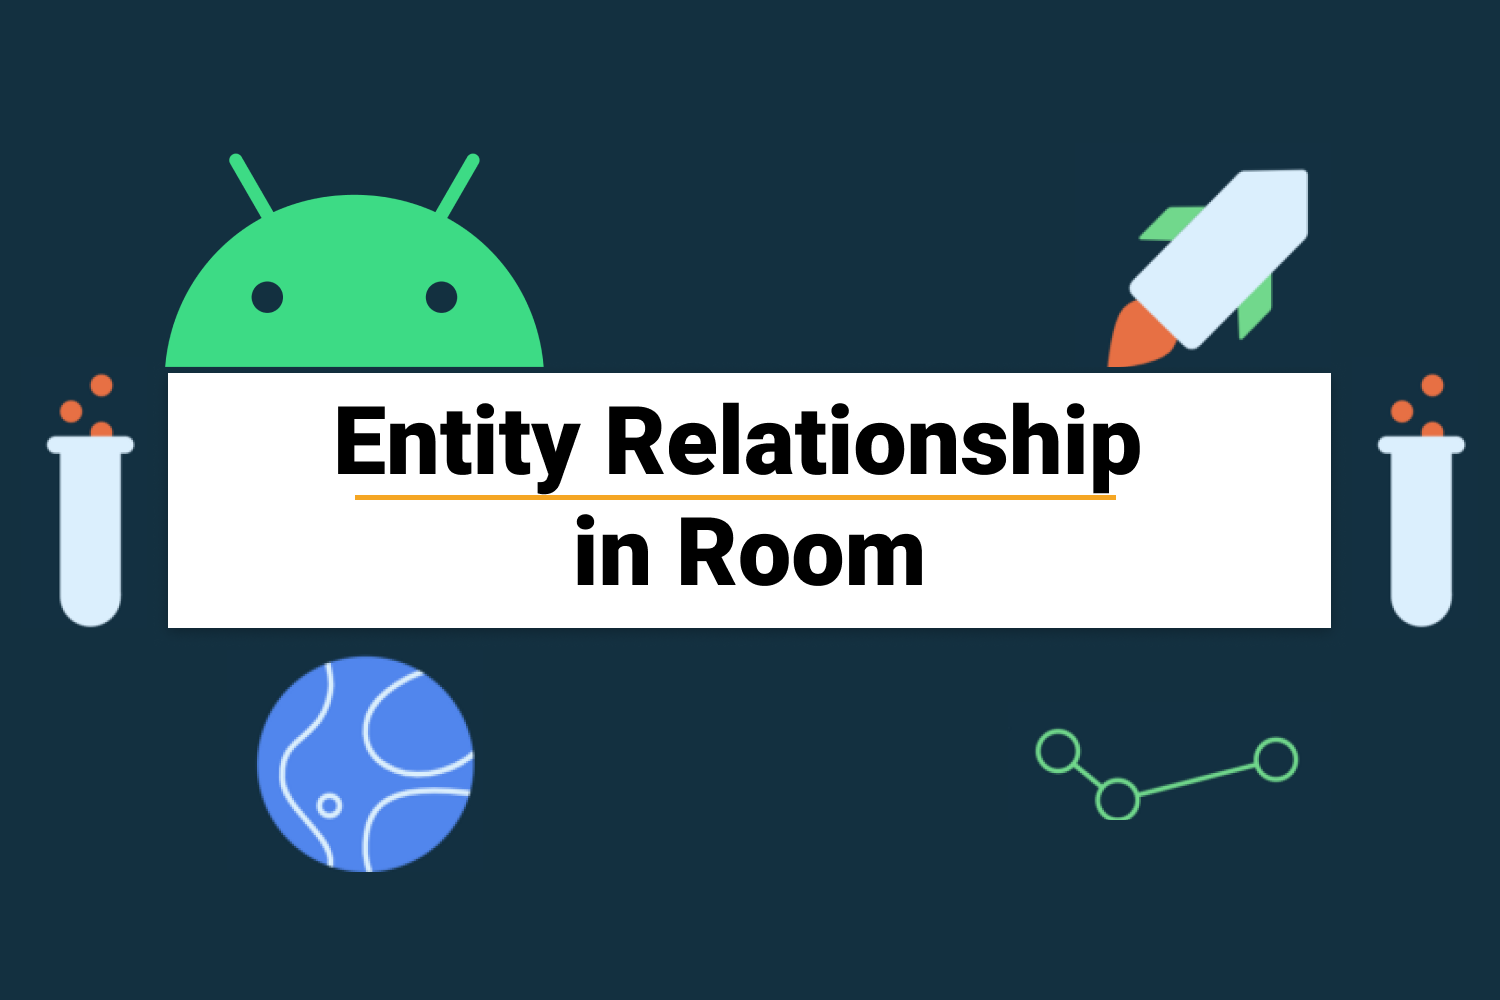 Entity Relationship in Room